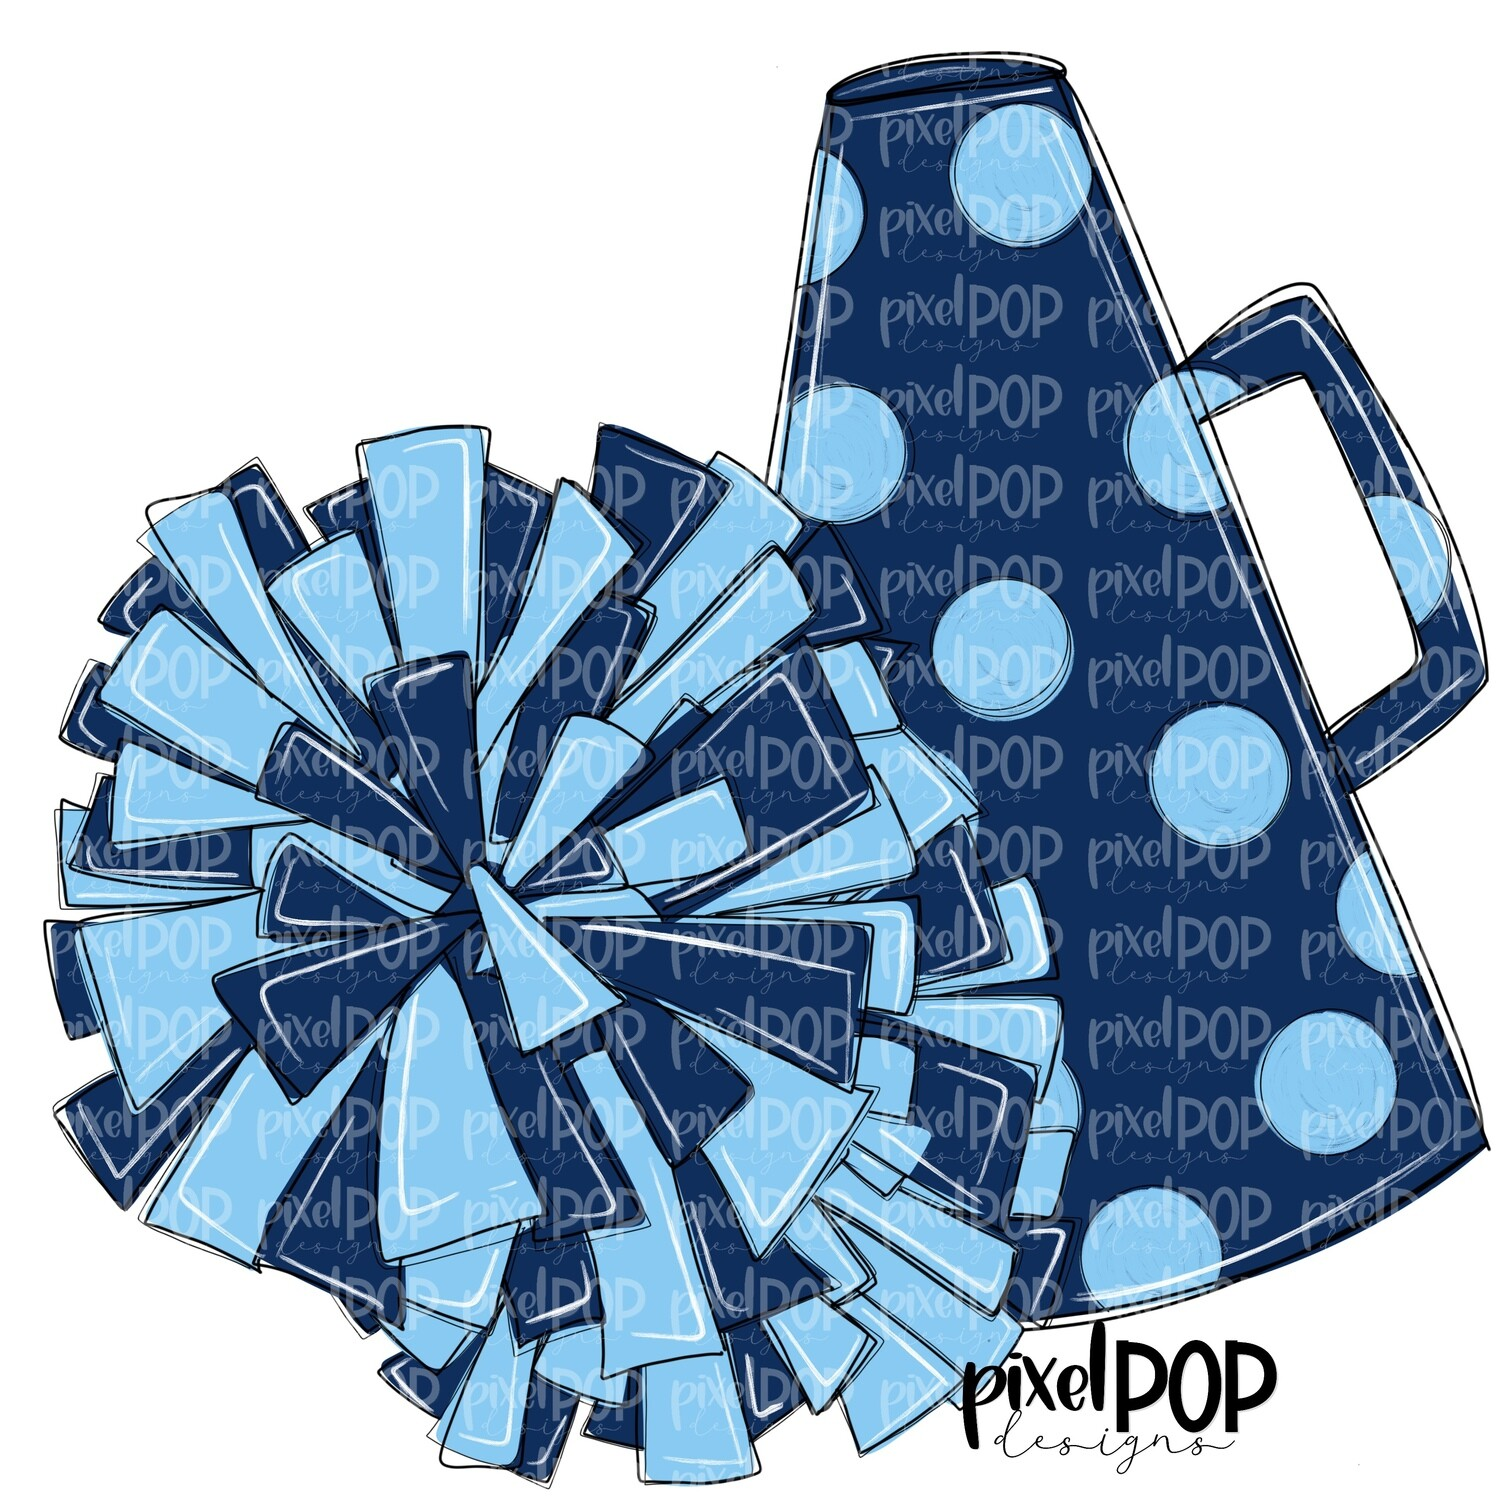 Cheerleading Megaphone and Poms Navy and Light Blue PNG   Cheerleading   Cheer Design   Cheer Art   Cheer Blank   Sports Art